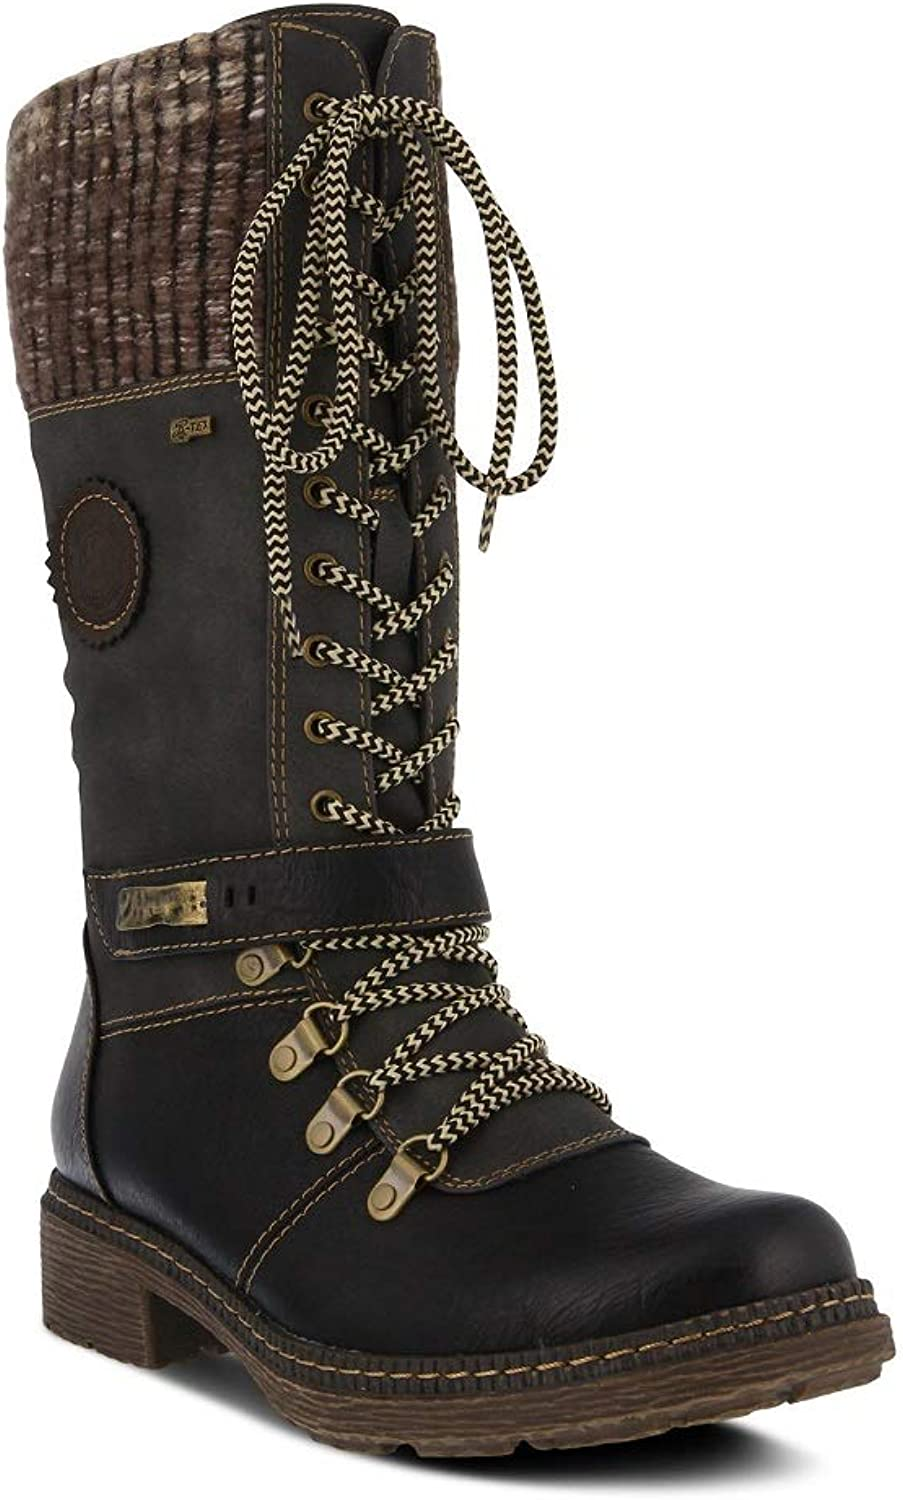 Spring Step Women's Ababi Boot   color Black  Winter Vegan Leather Boot